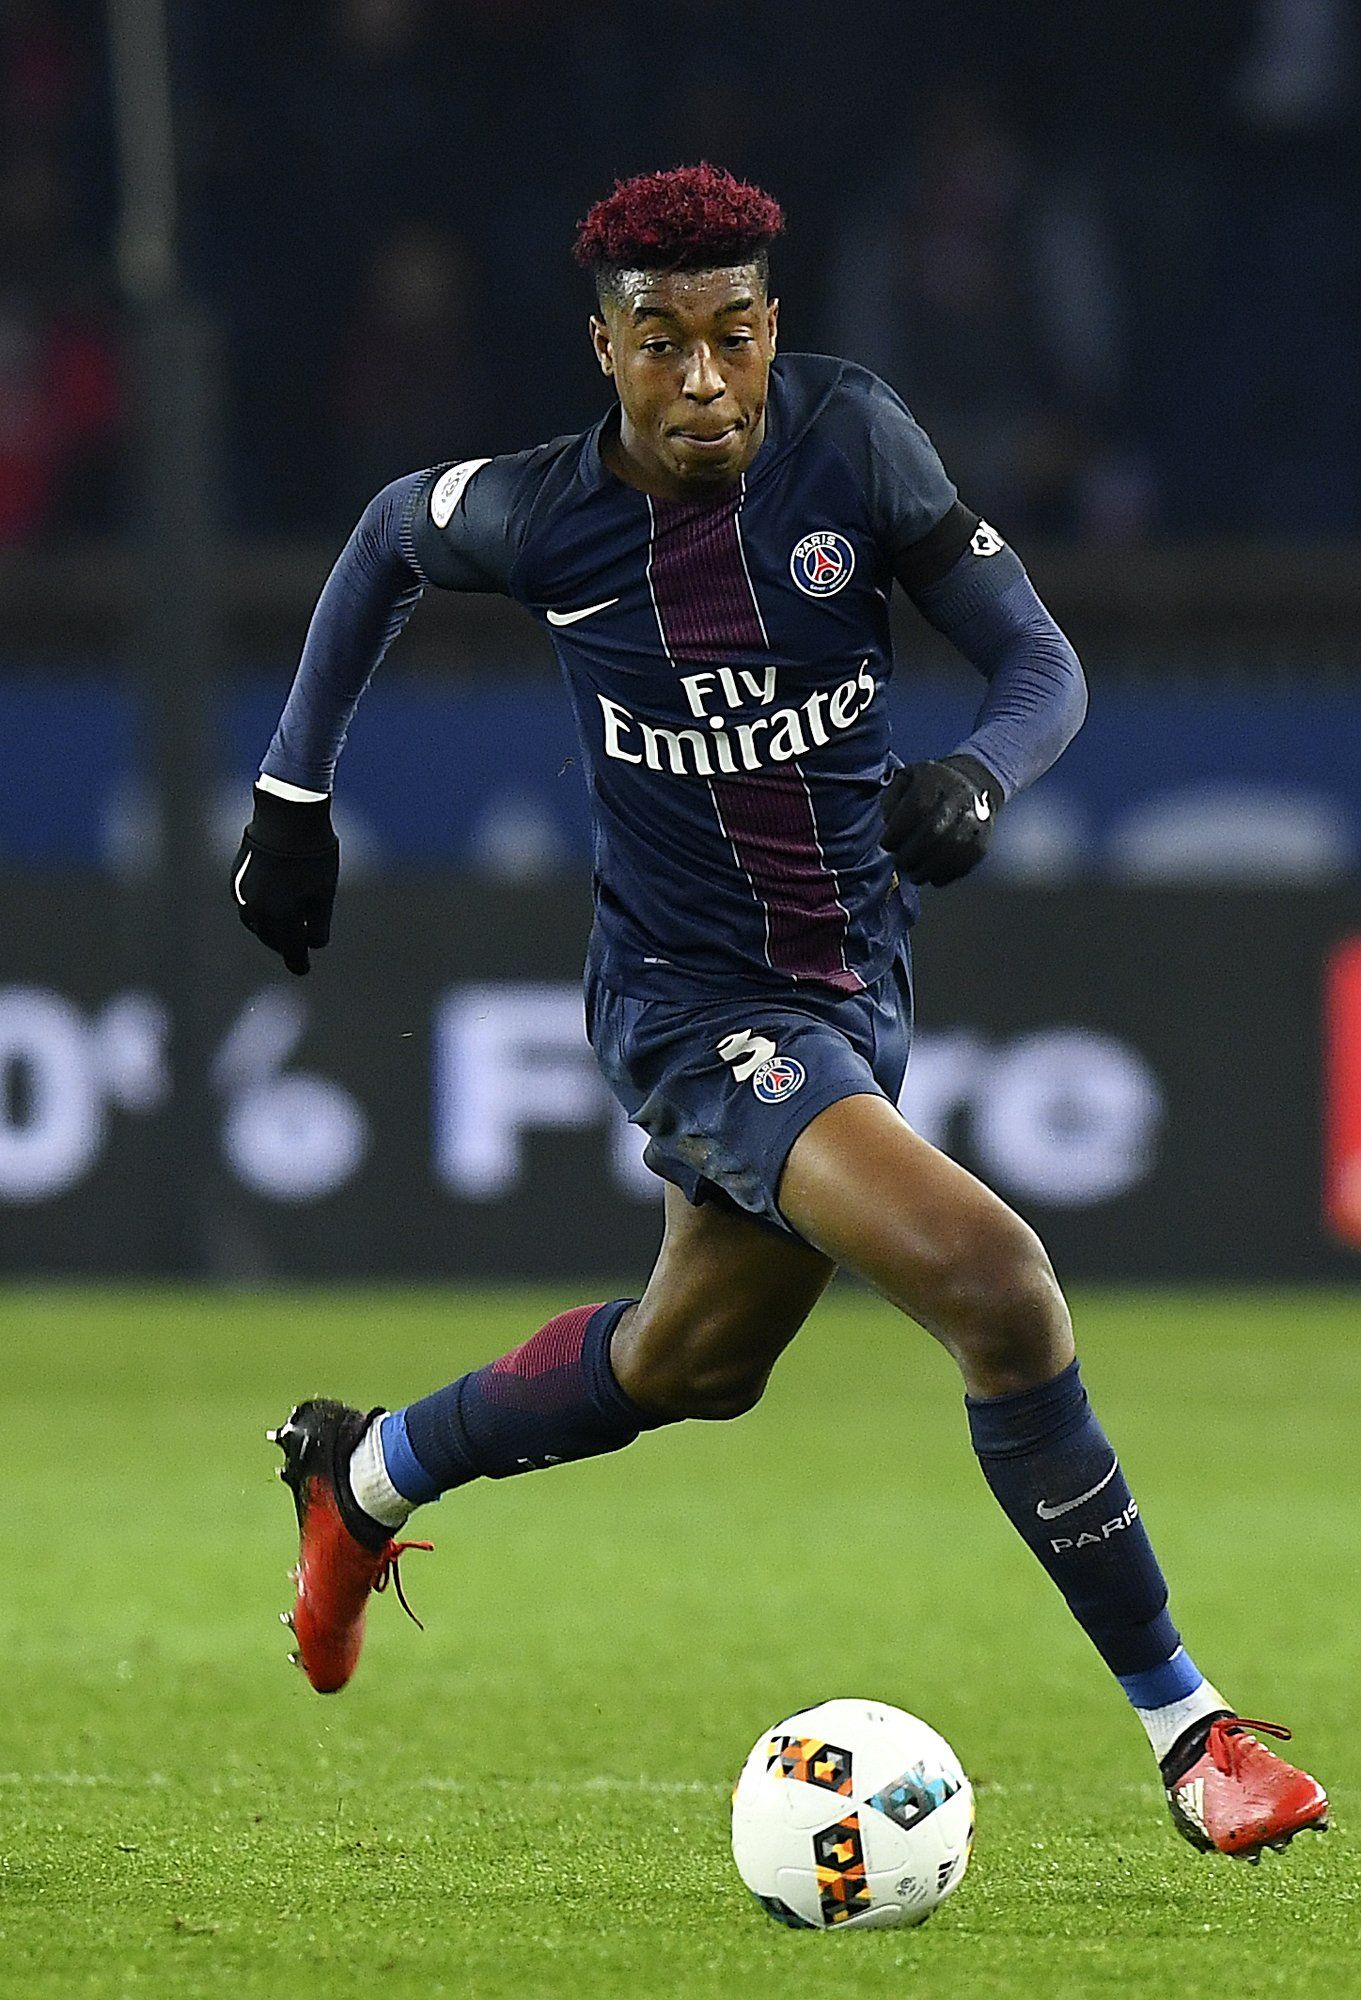 Cute Cartoon Wallpapers For Pc Presnel Kimpembe Wallpapers